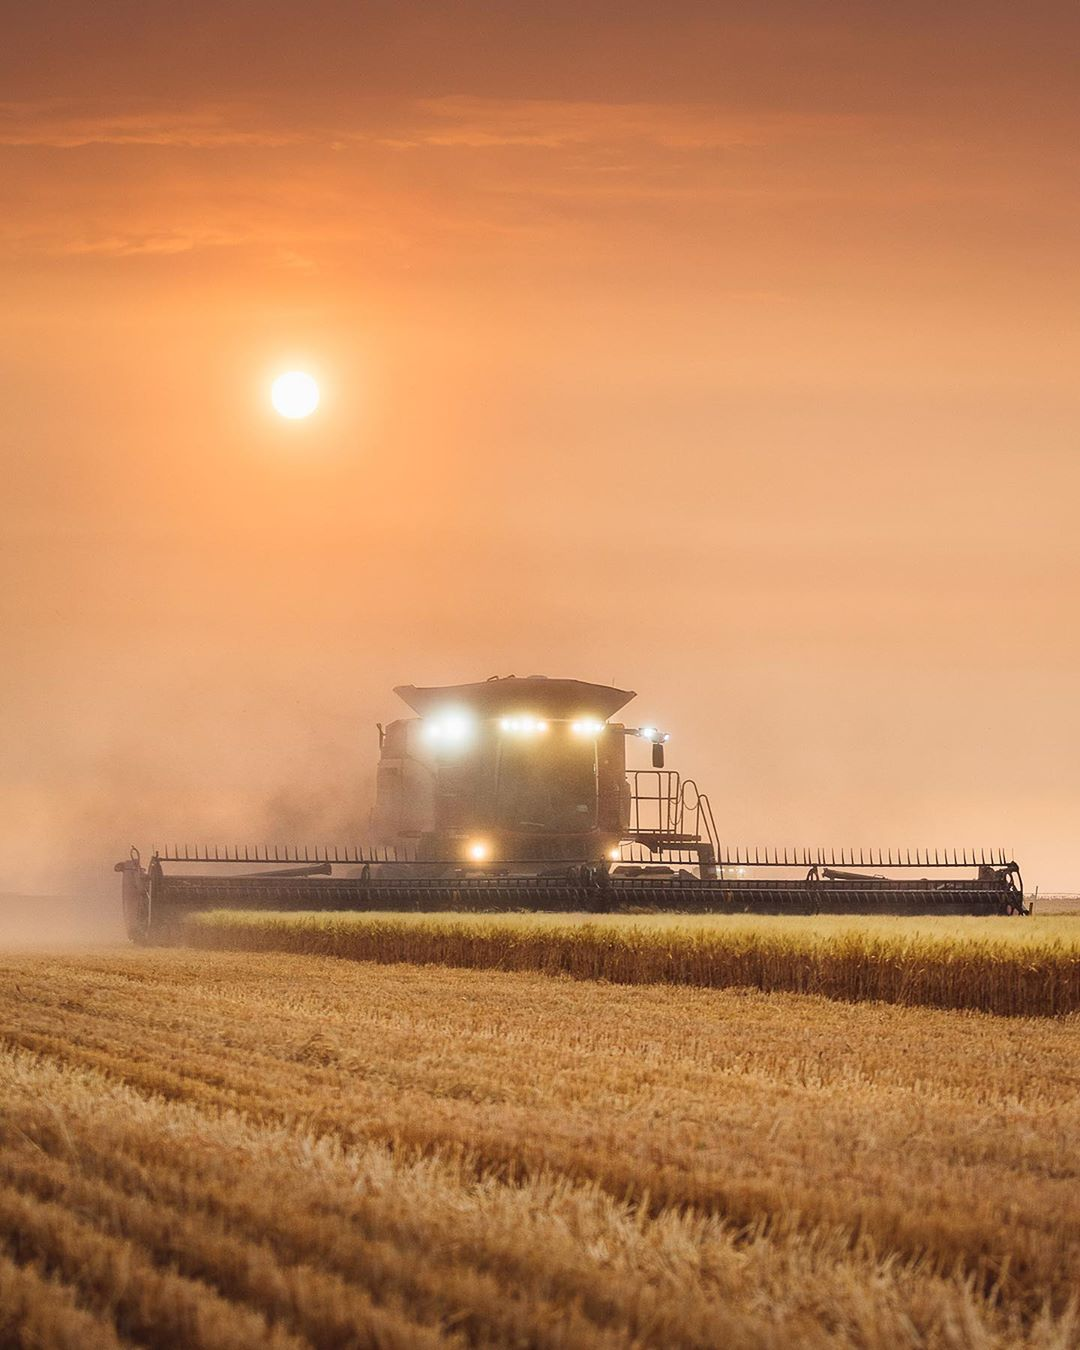 A farm machine plows the fields against an orange sky